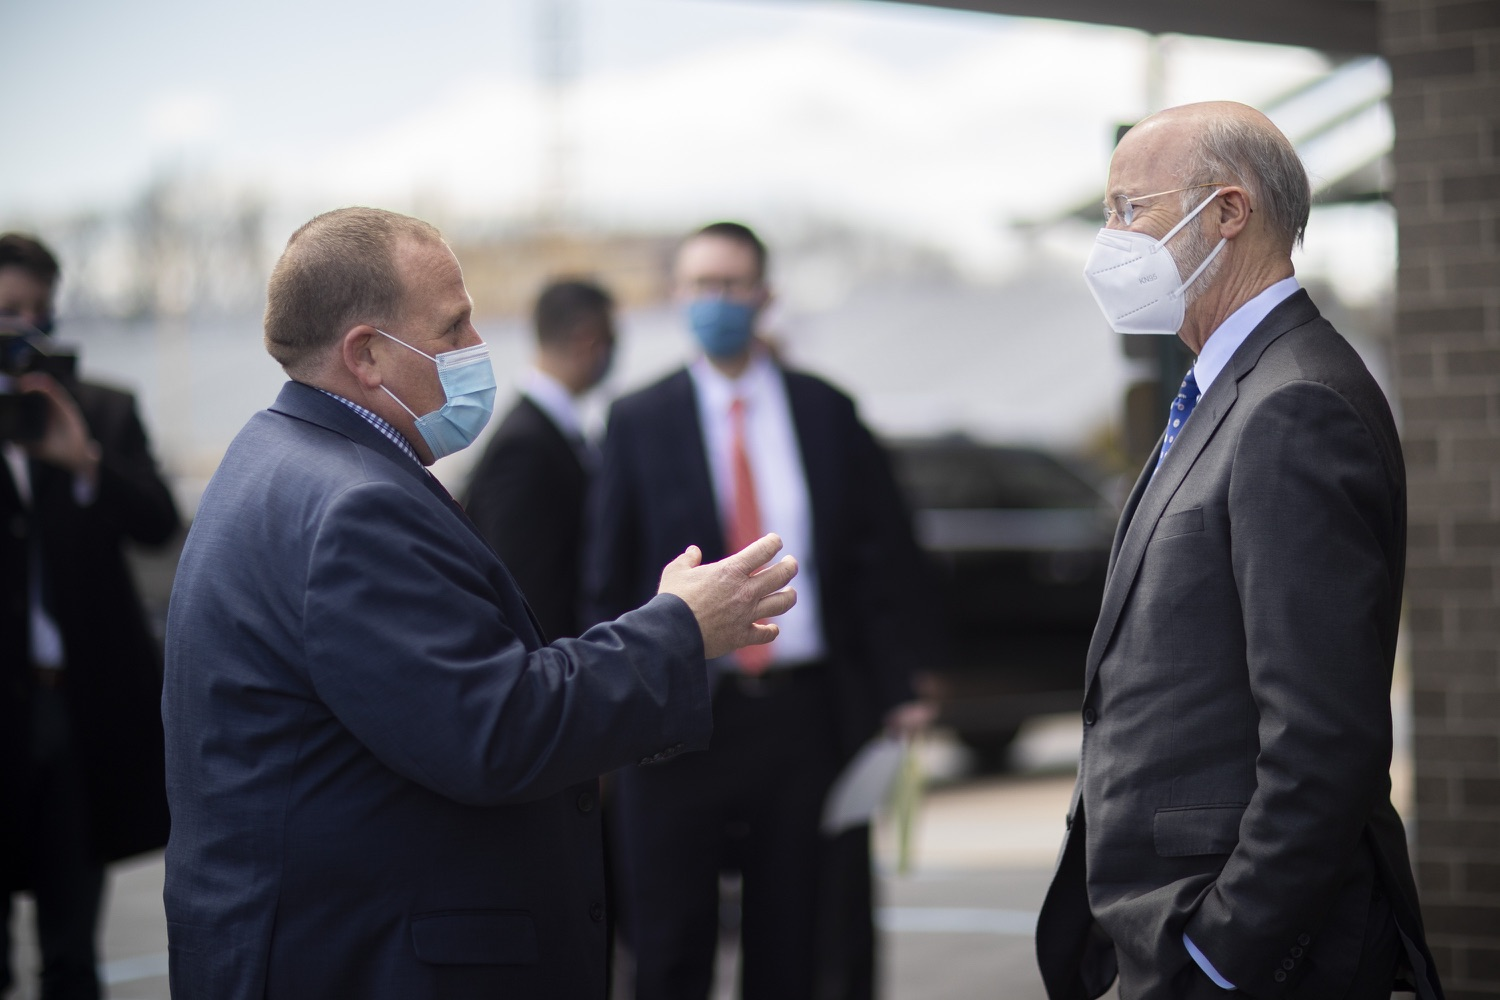 """<a href=""""https://filesource.wostreaming.net/commonwealthofpa/photo/18646_gov_vaccines_dz_005.jpg"""" target=""""_blank"""">⇣Download Photo<br></a>Pennsylvania Governor Tom Wolf visiting with Dr. Tony Grieco, Executive Director, Luzerne Intermediate Unit 18After vaccinating more than 112,500 teachers and school staff in only about three weeks, Governor Tom Wolf visited Luzerne County today to announce the special vaccination initiative is a success and was completed ahead of schedule. The accomplishment is an important step to help more students and teachers safely return to classrooms across the state.  Kingston, PA - April 2, 2021"""